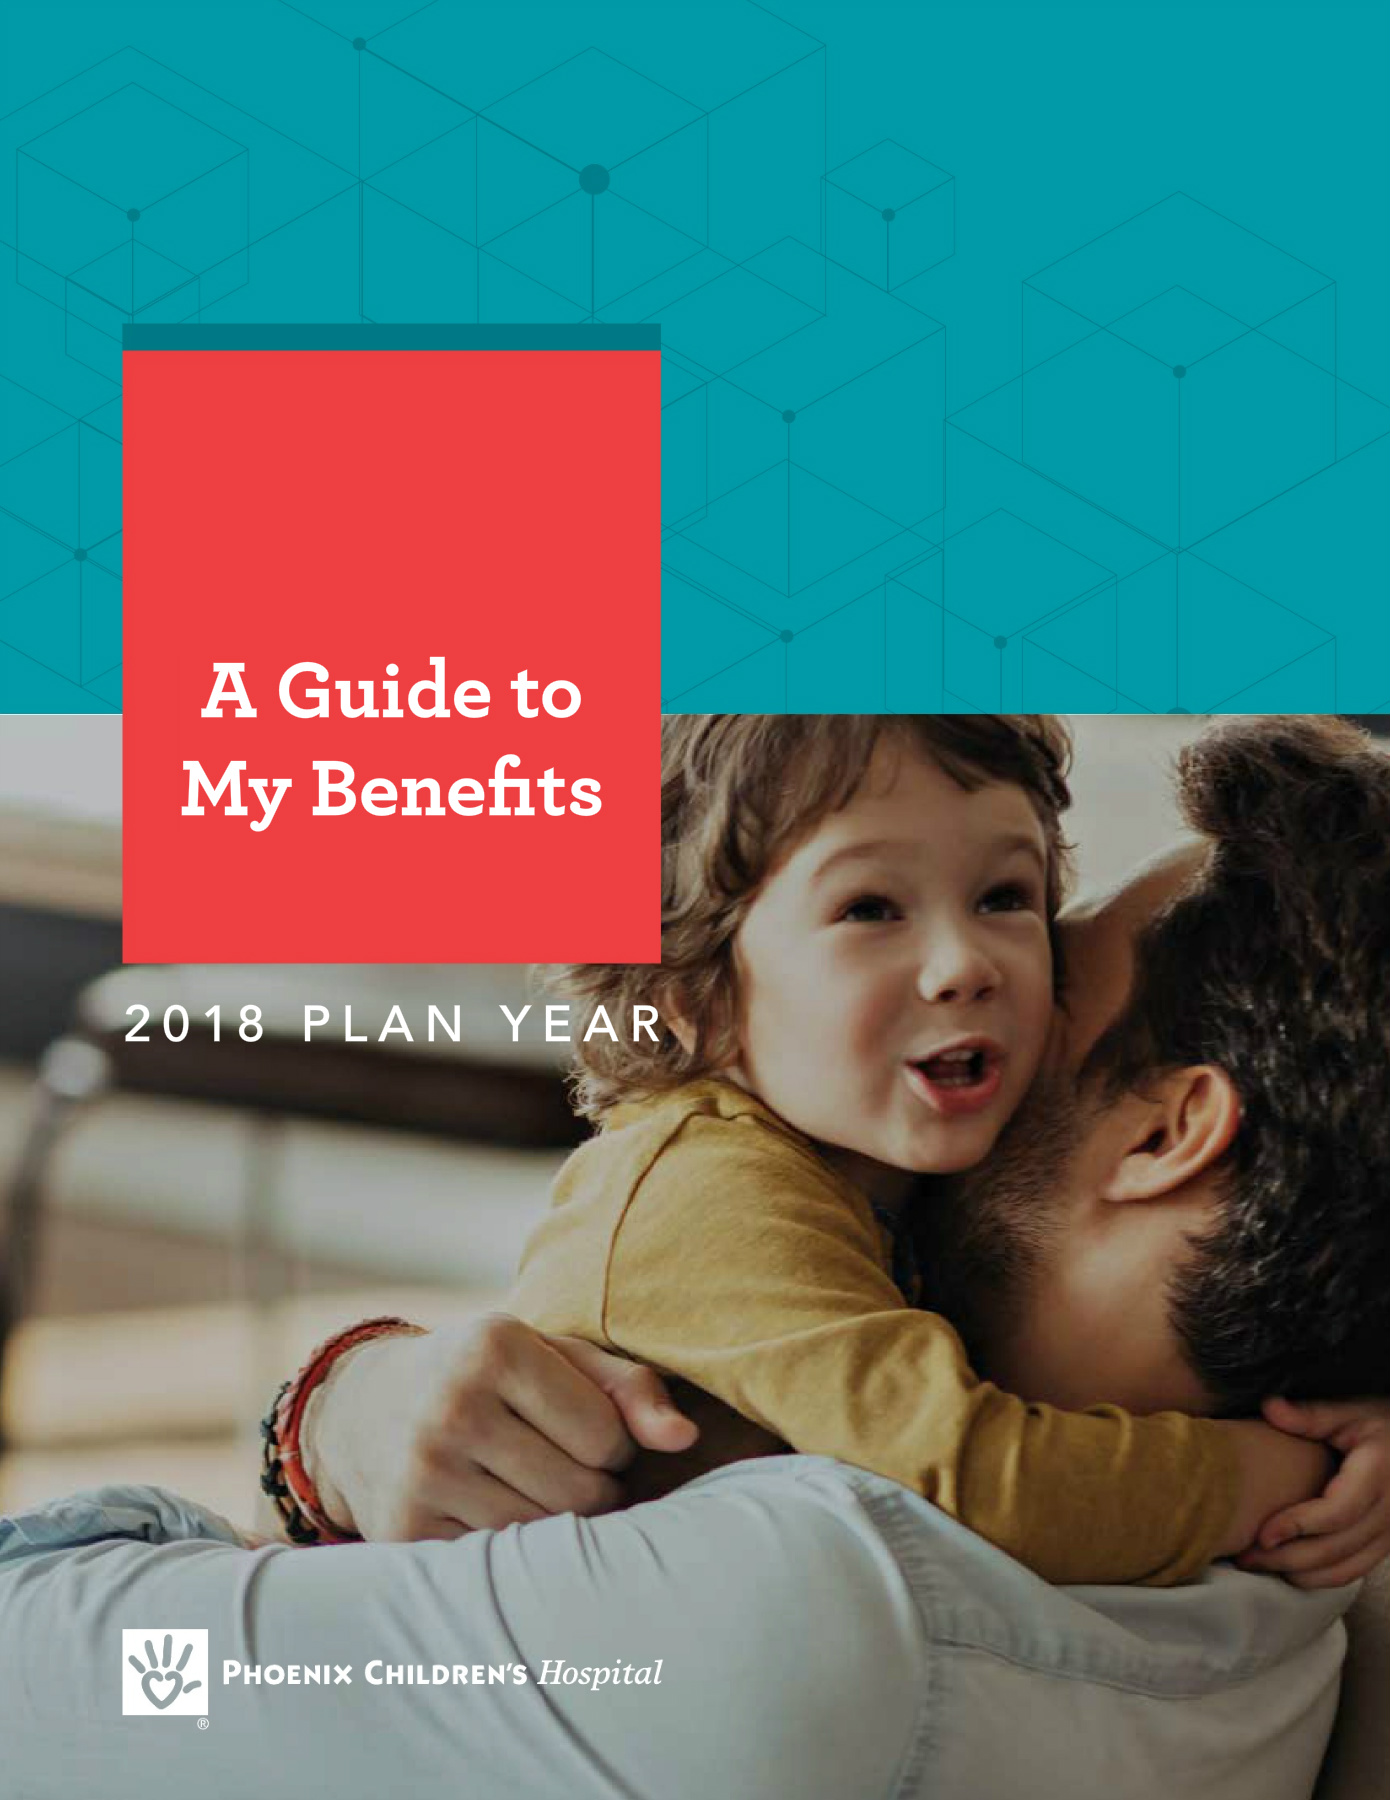 2018 BenefitsGuide_Draft4 Pages 1 - 24 - Text Version | AnyFlip